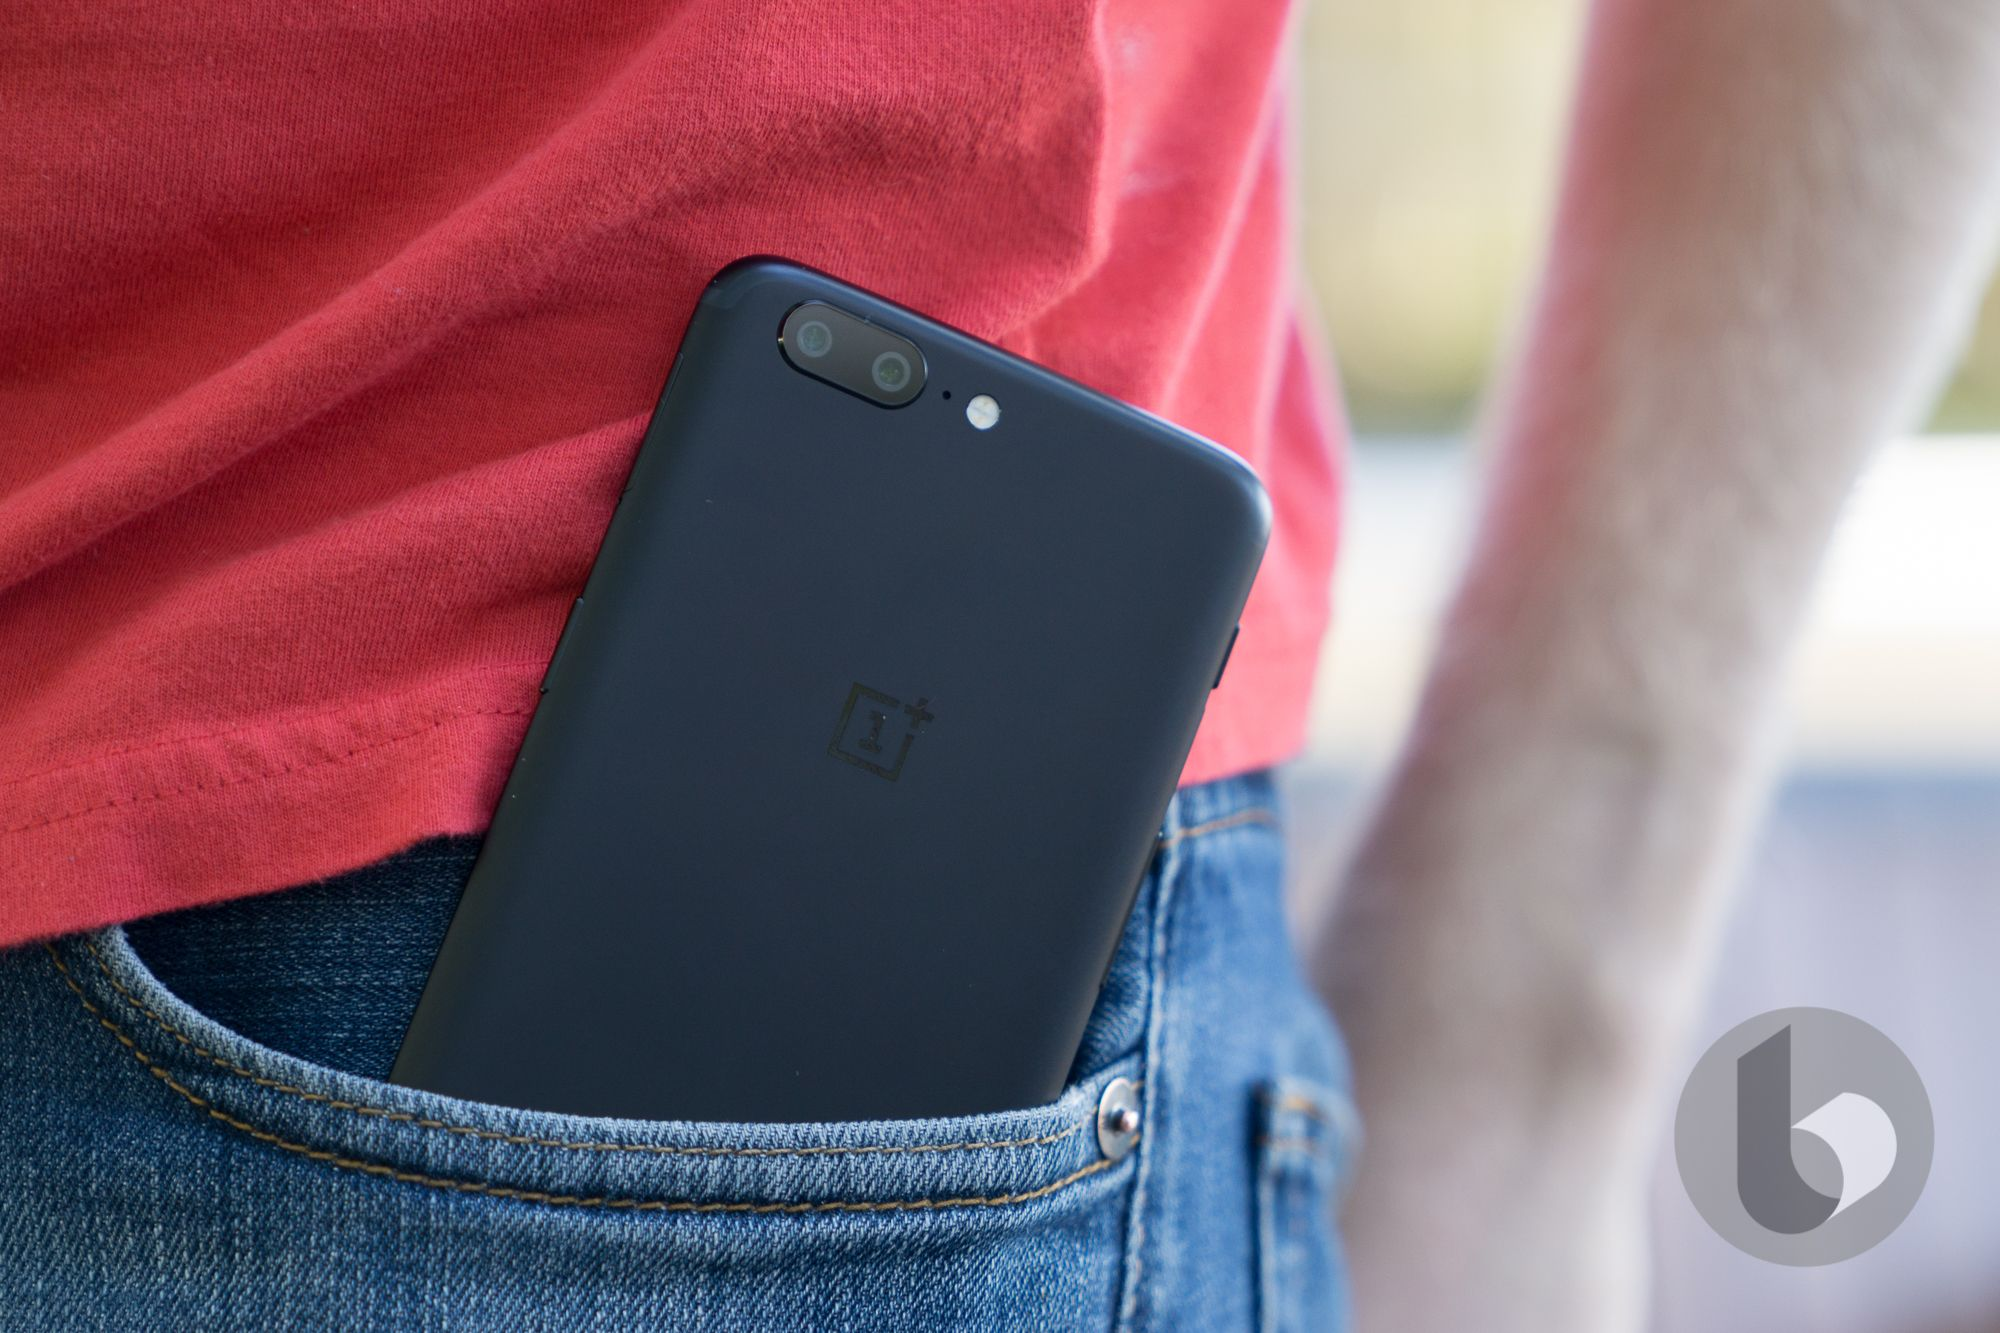 OnePlus 5 now on sale to everyone